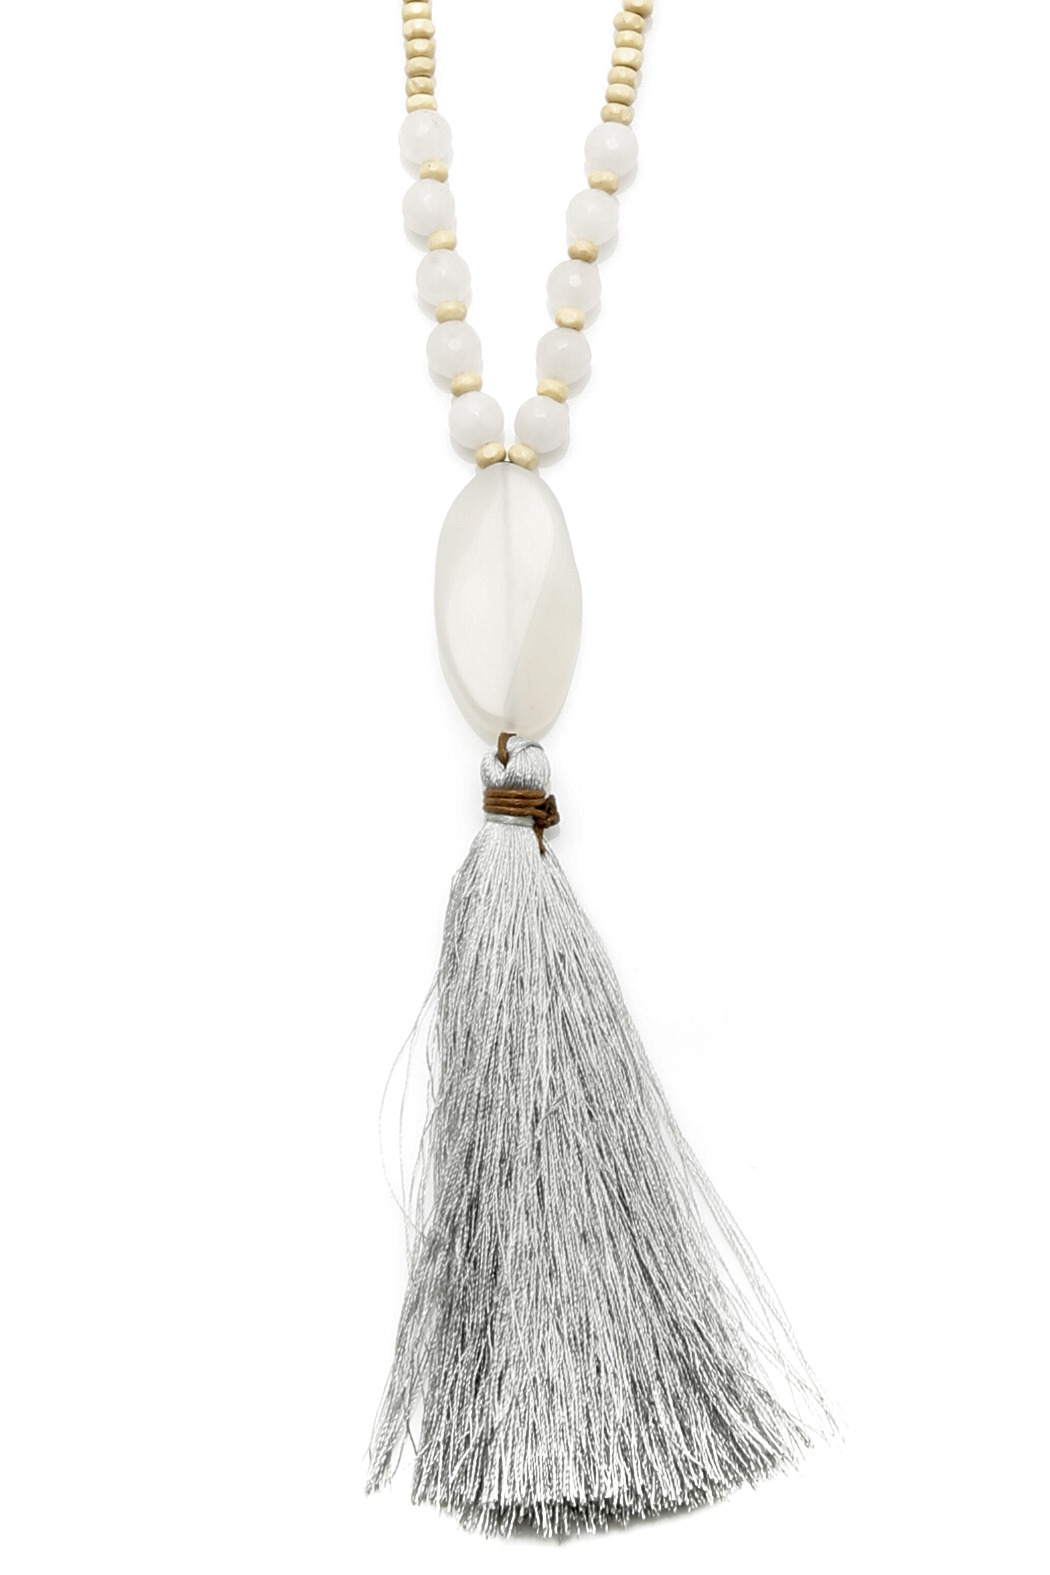 Jewels By Joanne Long Wood Tassel Necklace - Back Cropped Image